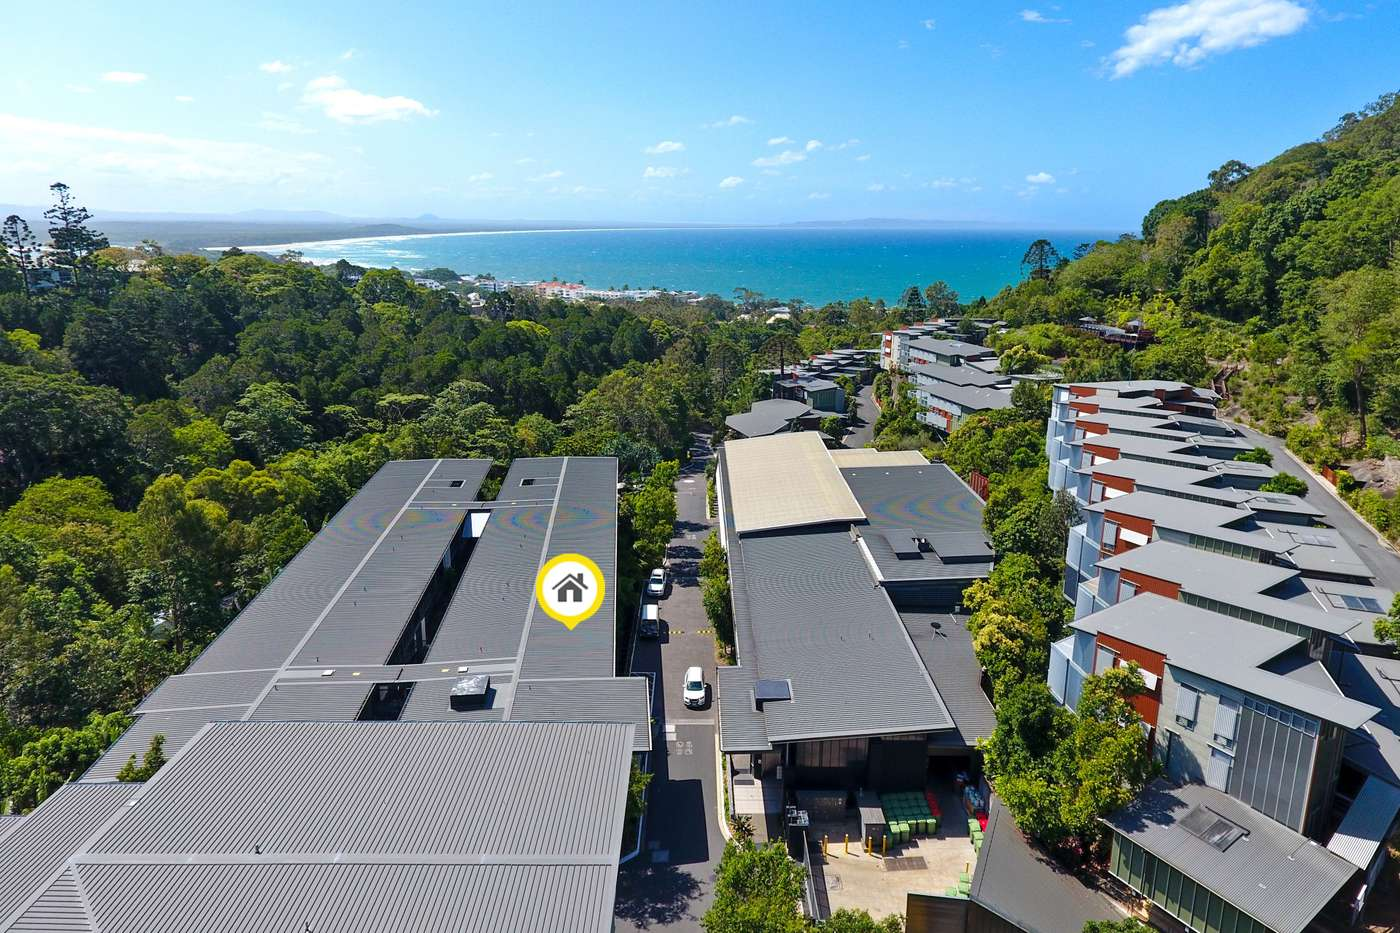 Main view of Homely house listing, 9417/5 Morwong Drive, Noosa Heads, QLD 4567